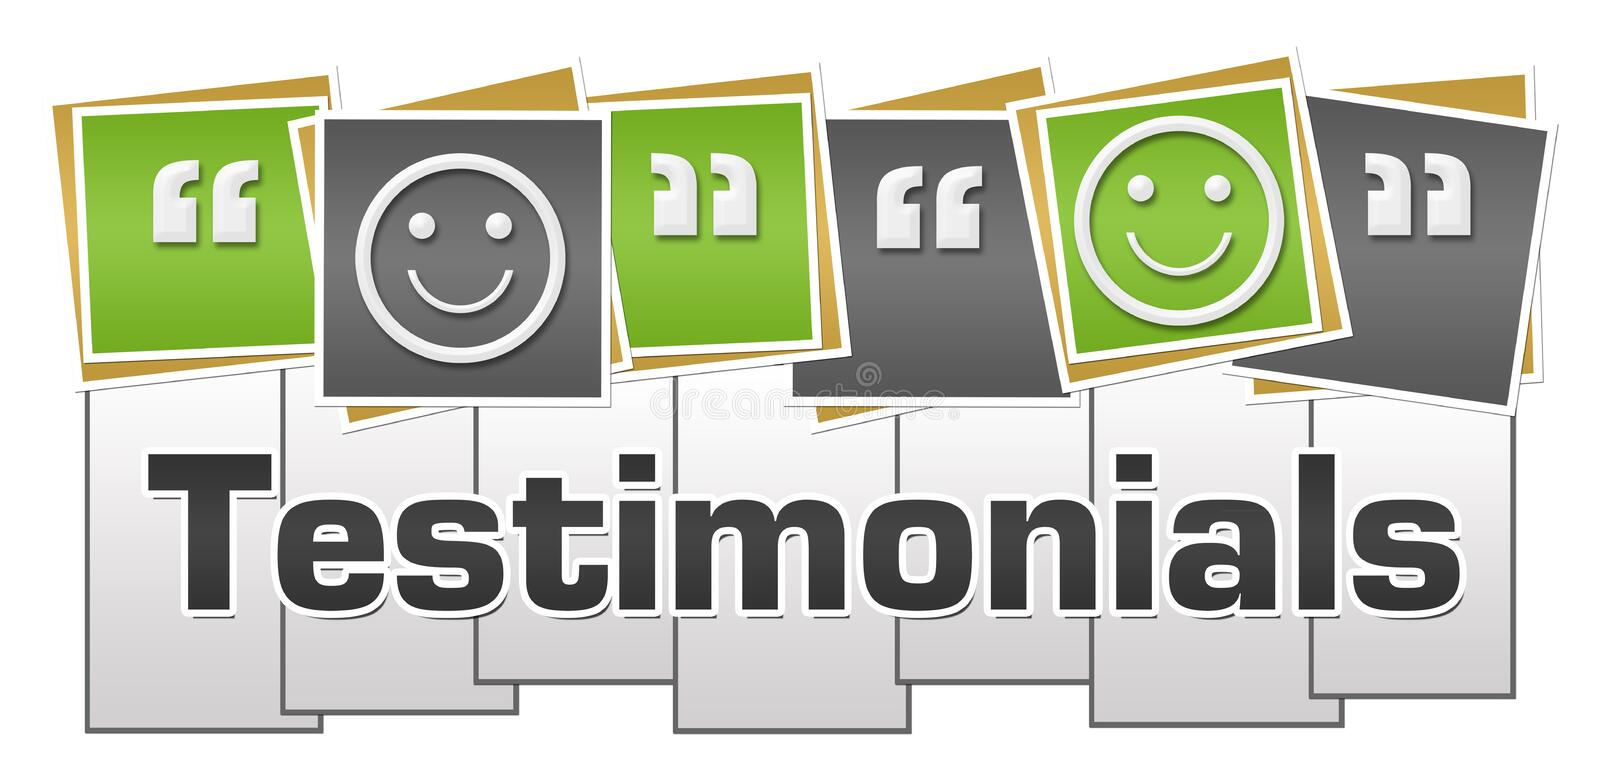 Testimonials Green Grey Squares Stripes. Testimonials concept image with text and related symbol stock illustration